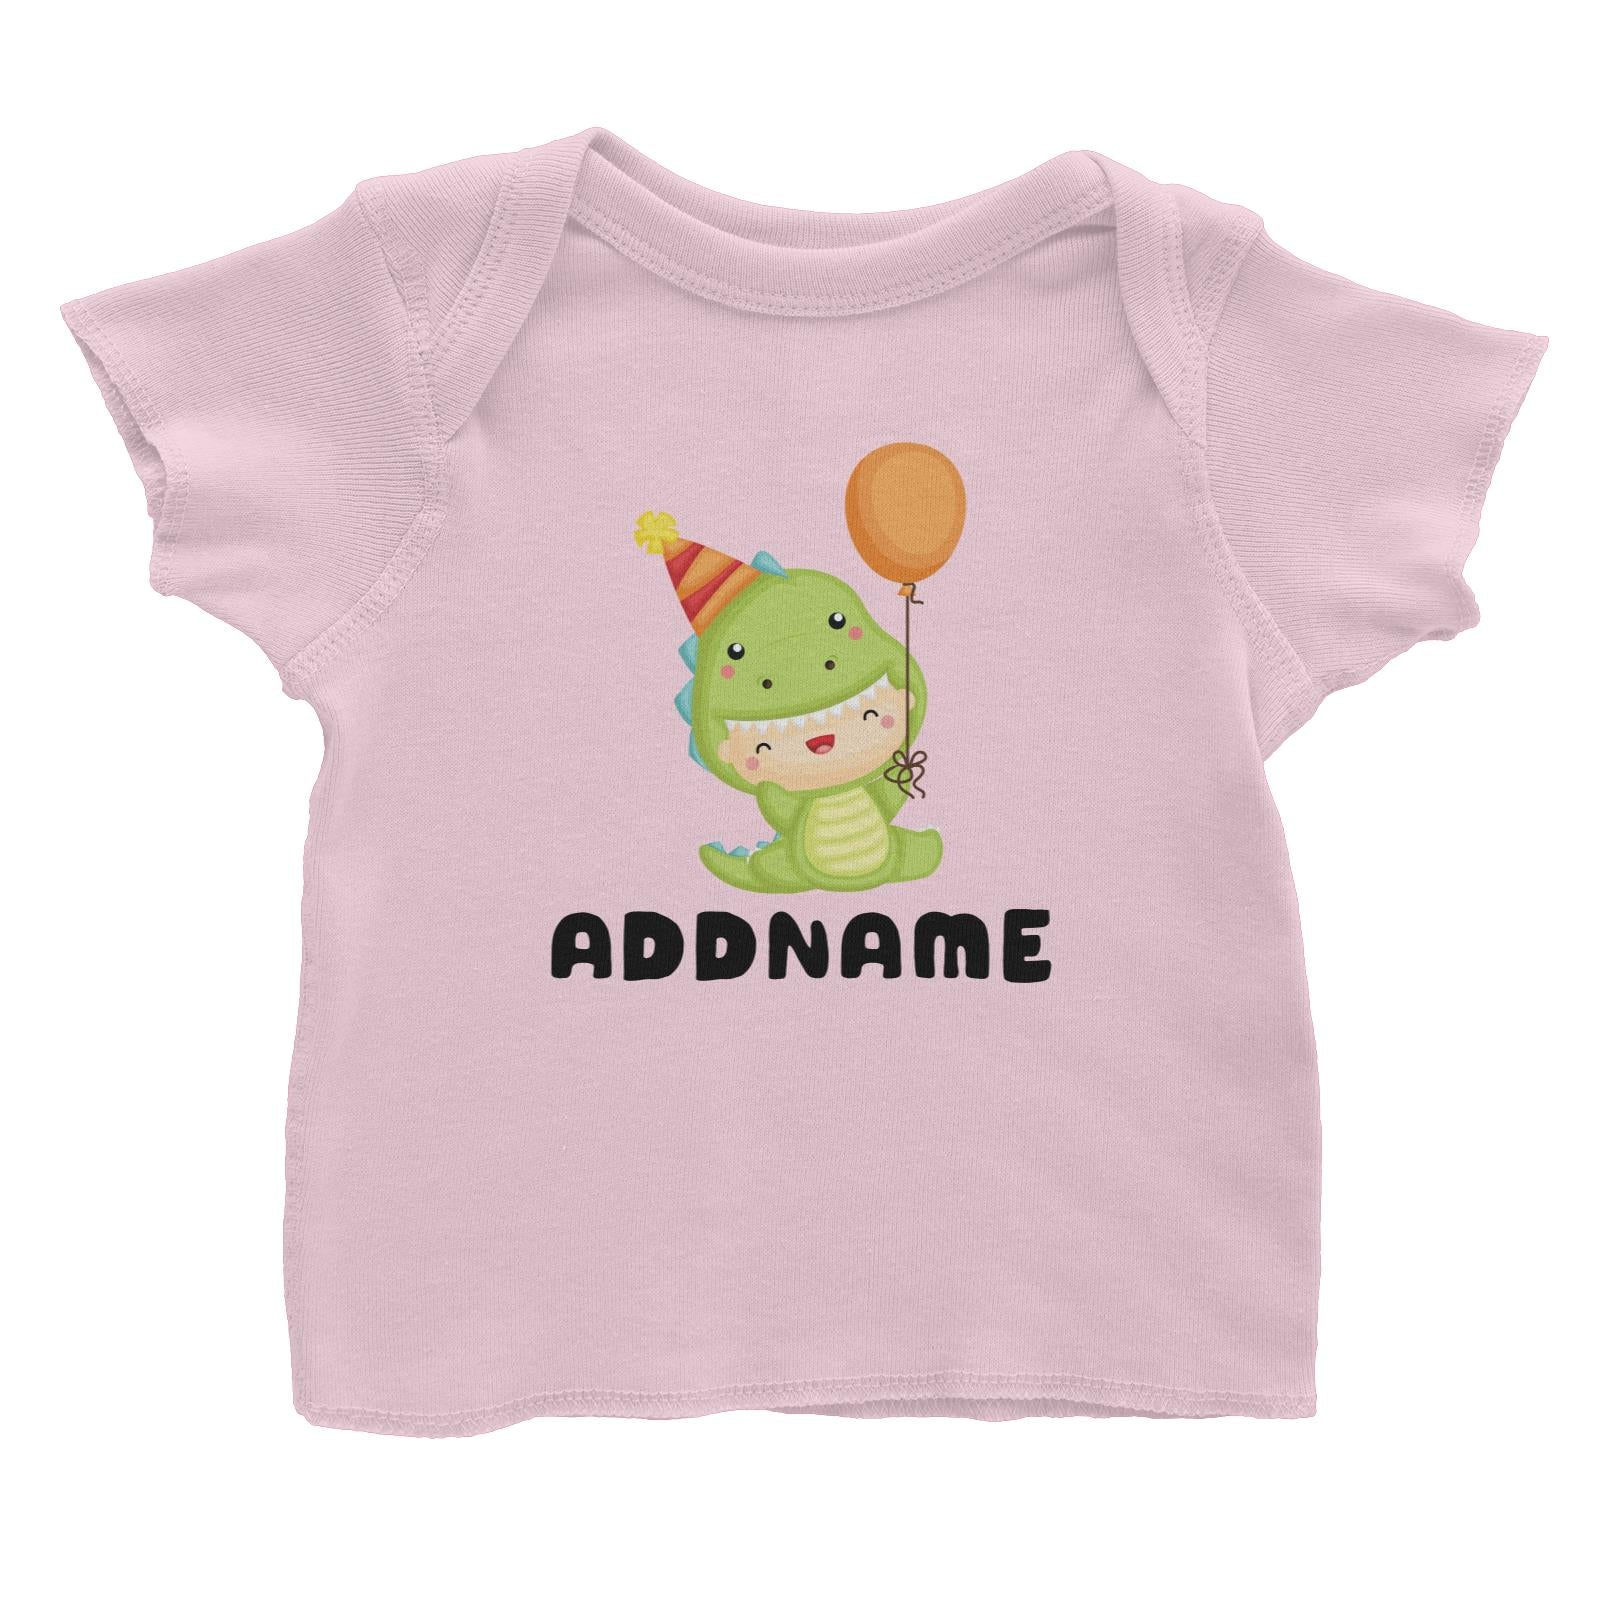 Birthday Dinosaur Happy Baby Wearing Dinosaur Suit And Party Hat Addname Baby T-Shirt